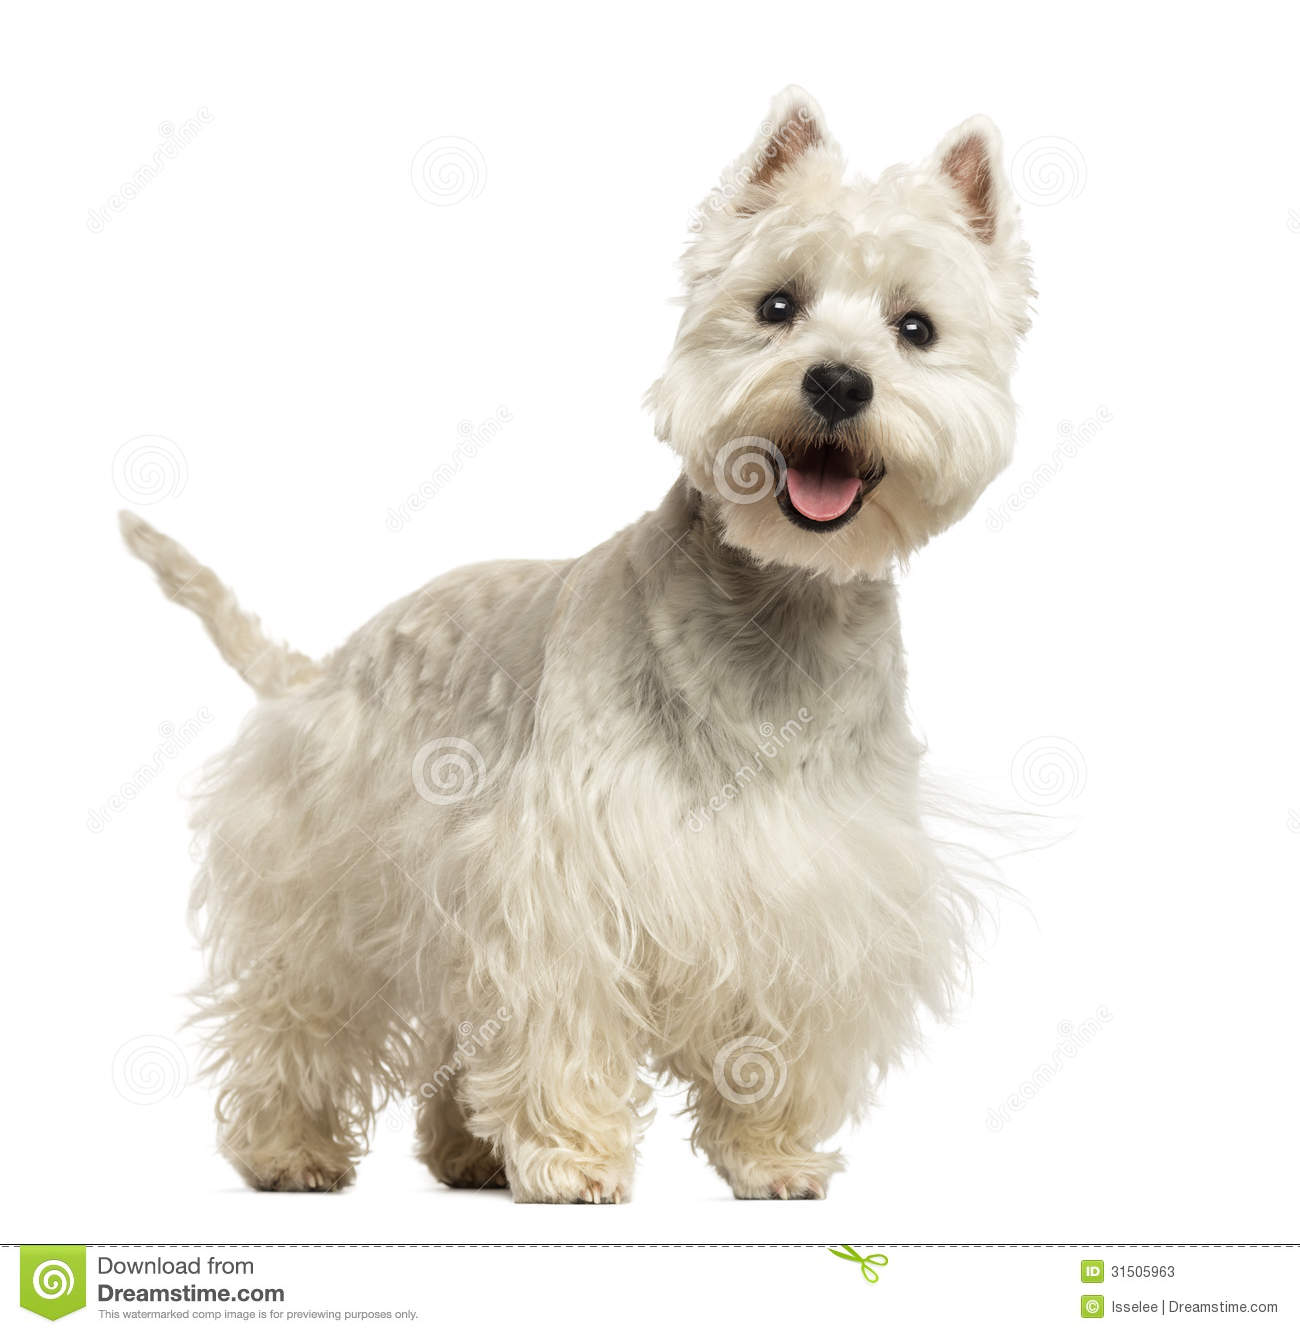 West Highland White Terrier panting, looking happy, 18 months